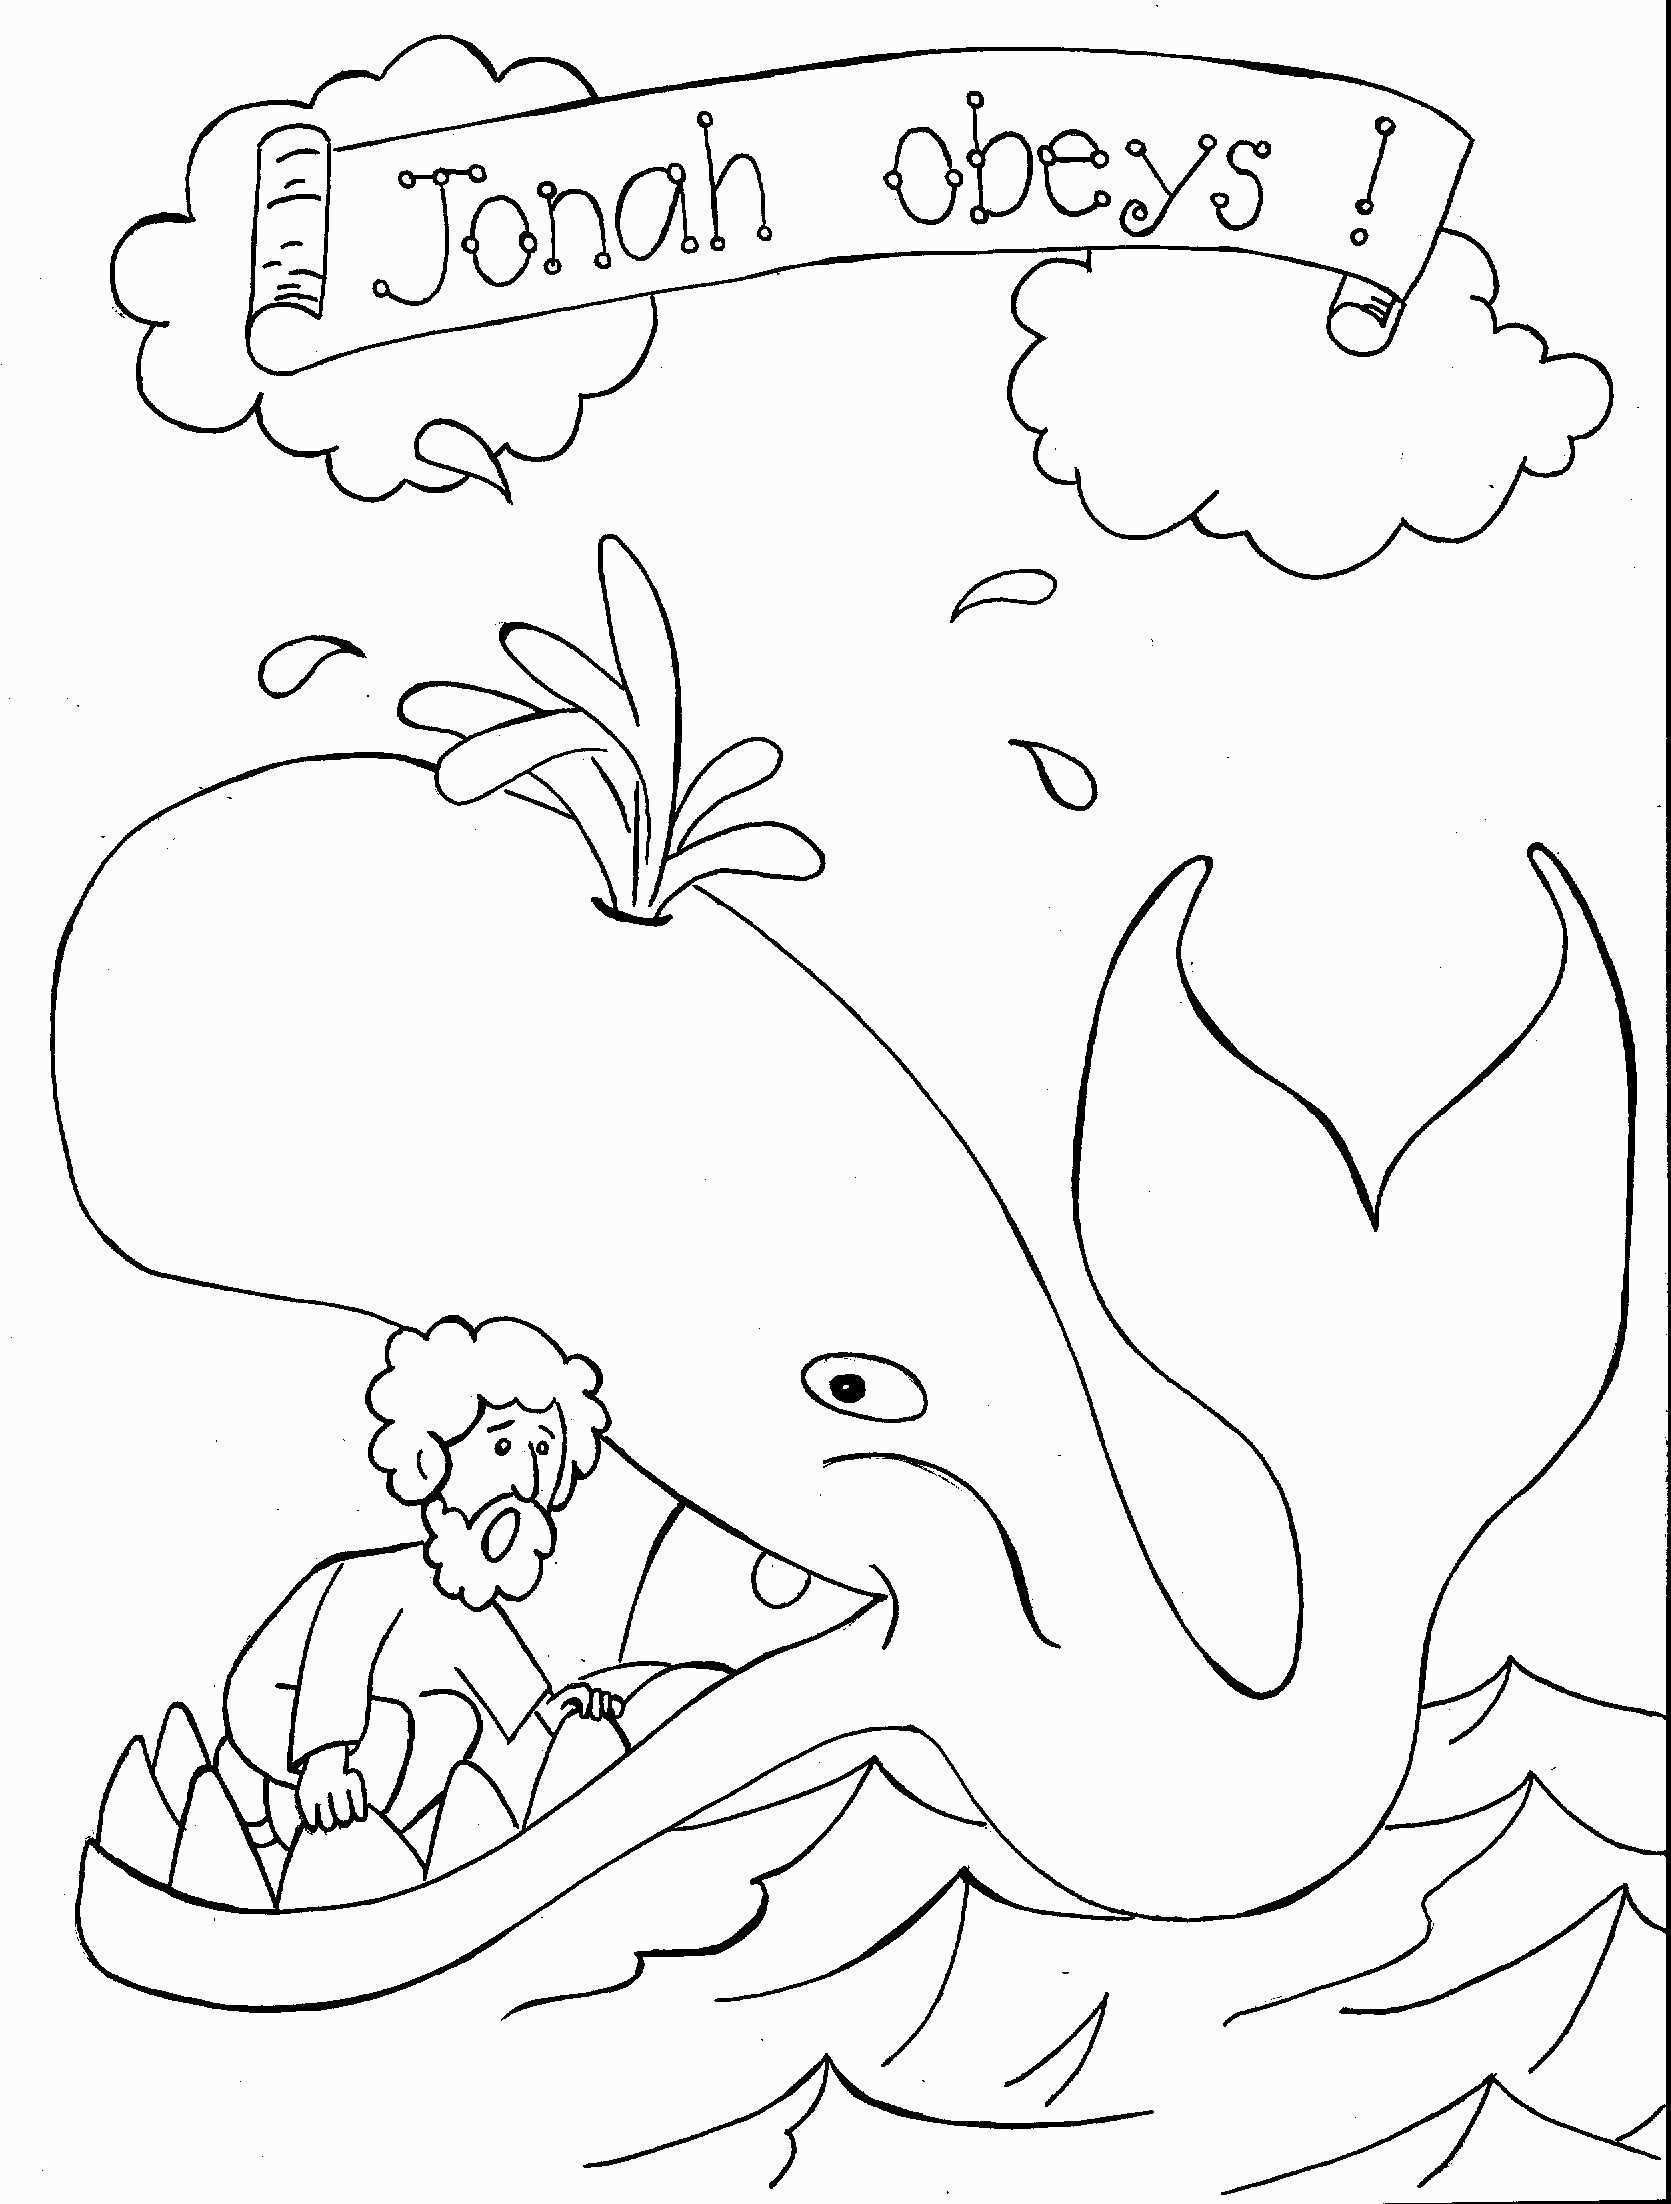 Luxury Free Coloring Pages In Spanish | Jvzooreview - Free Printable Bible Characters Coloring Pages